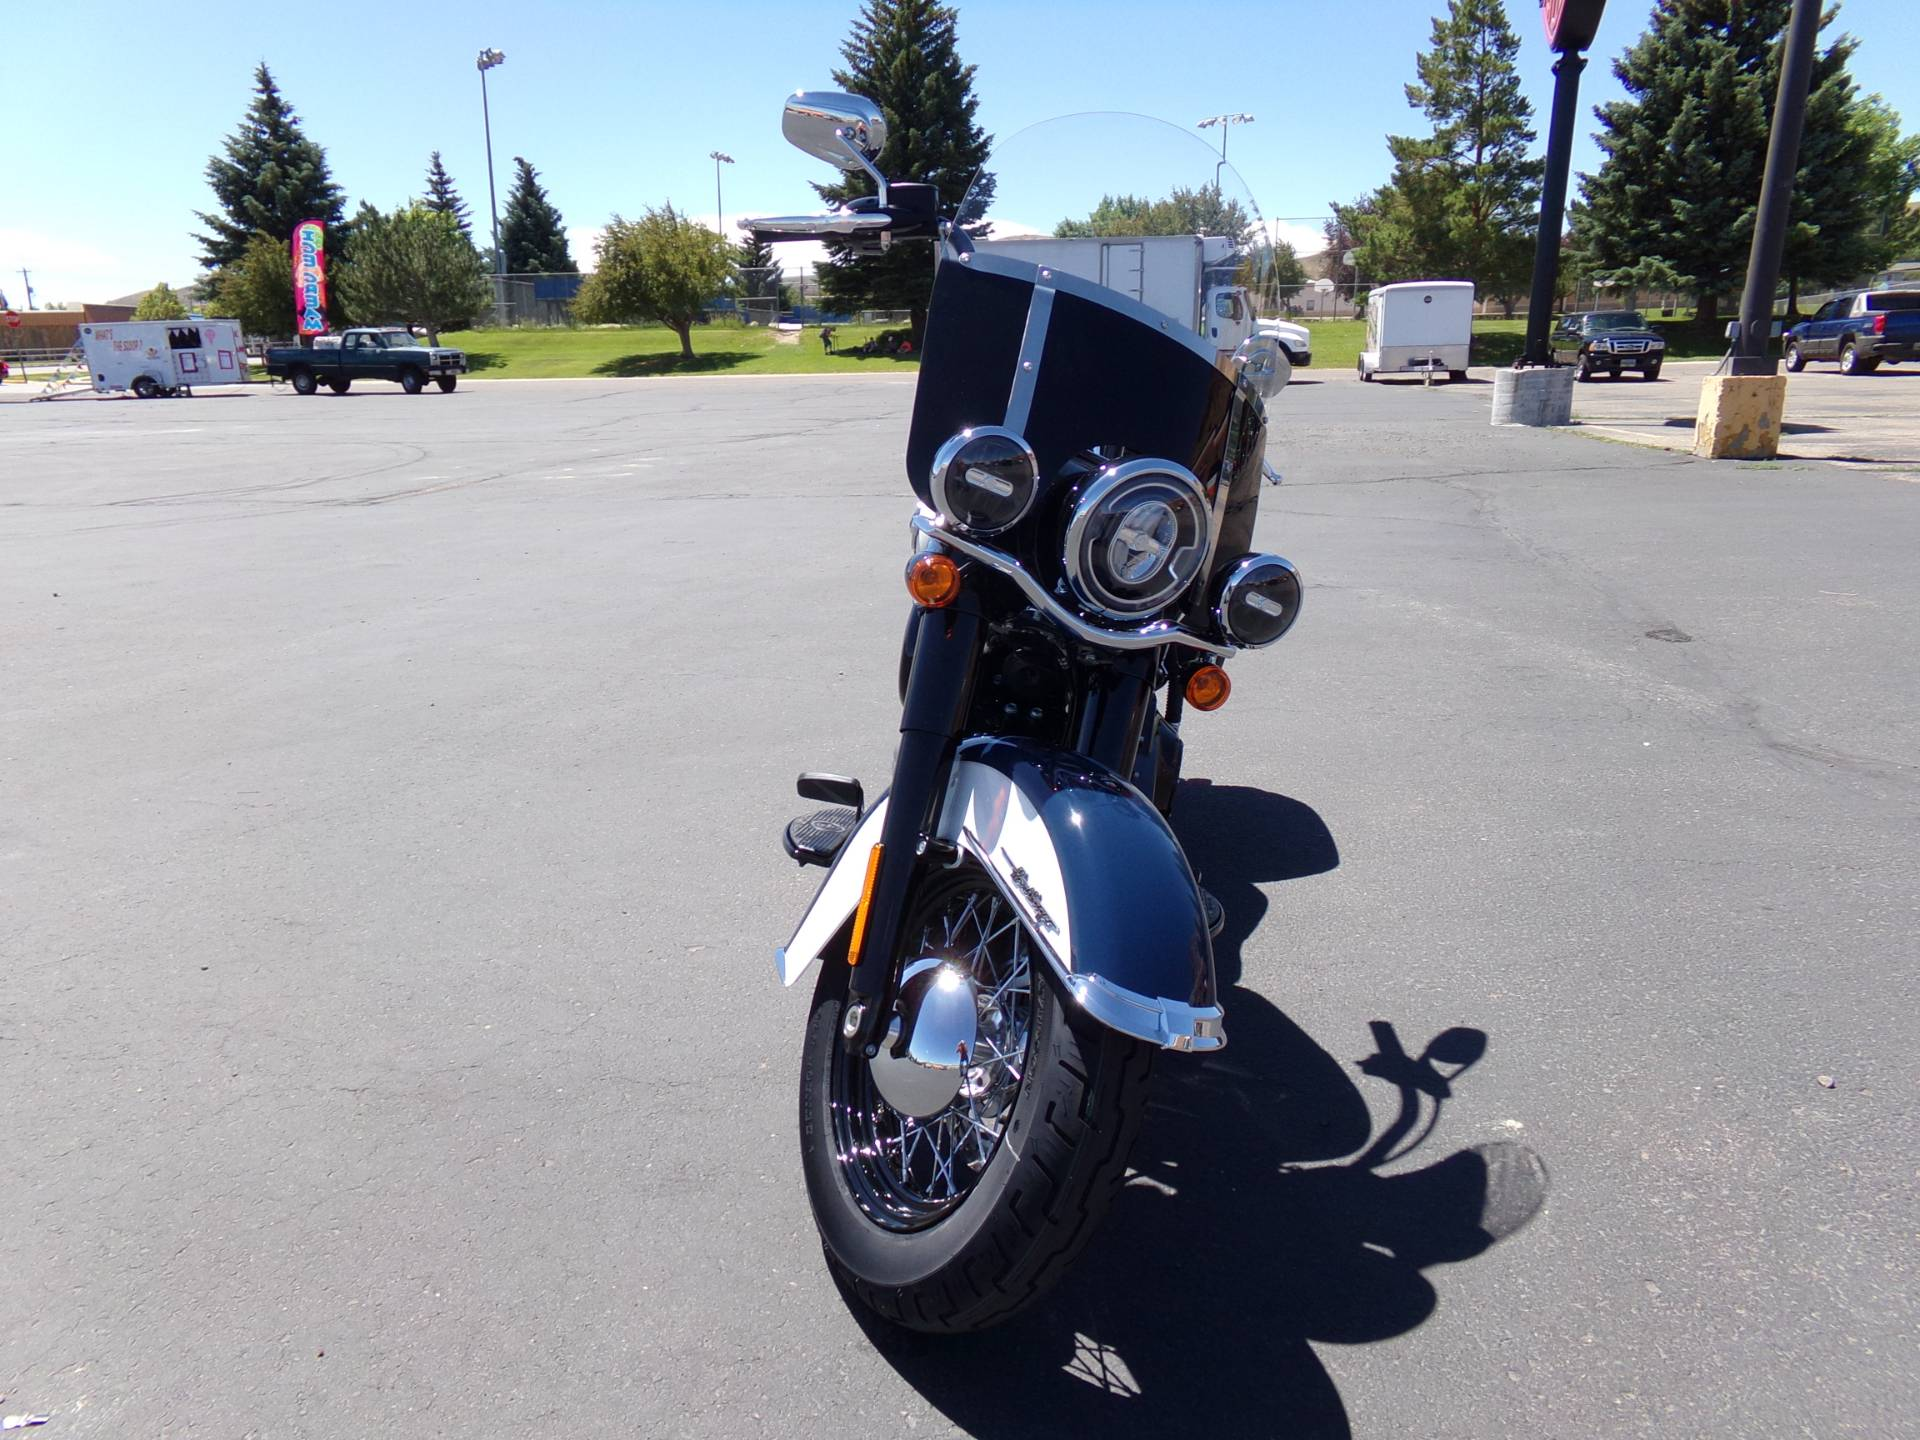 2019 Harley-Davidson Heritage Classic 107 in Green River, Wyoming - Photo 7